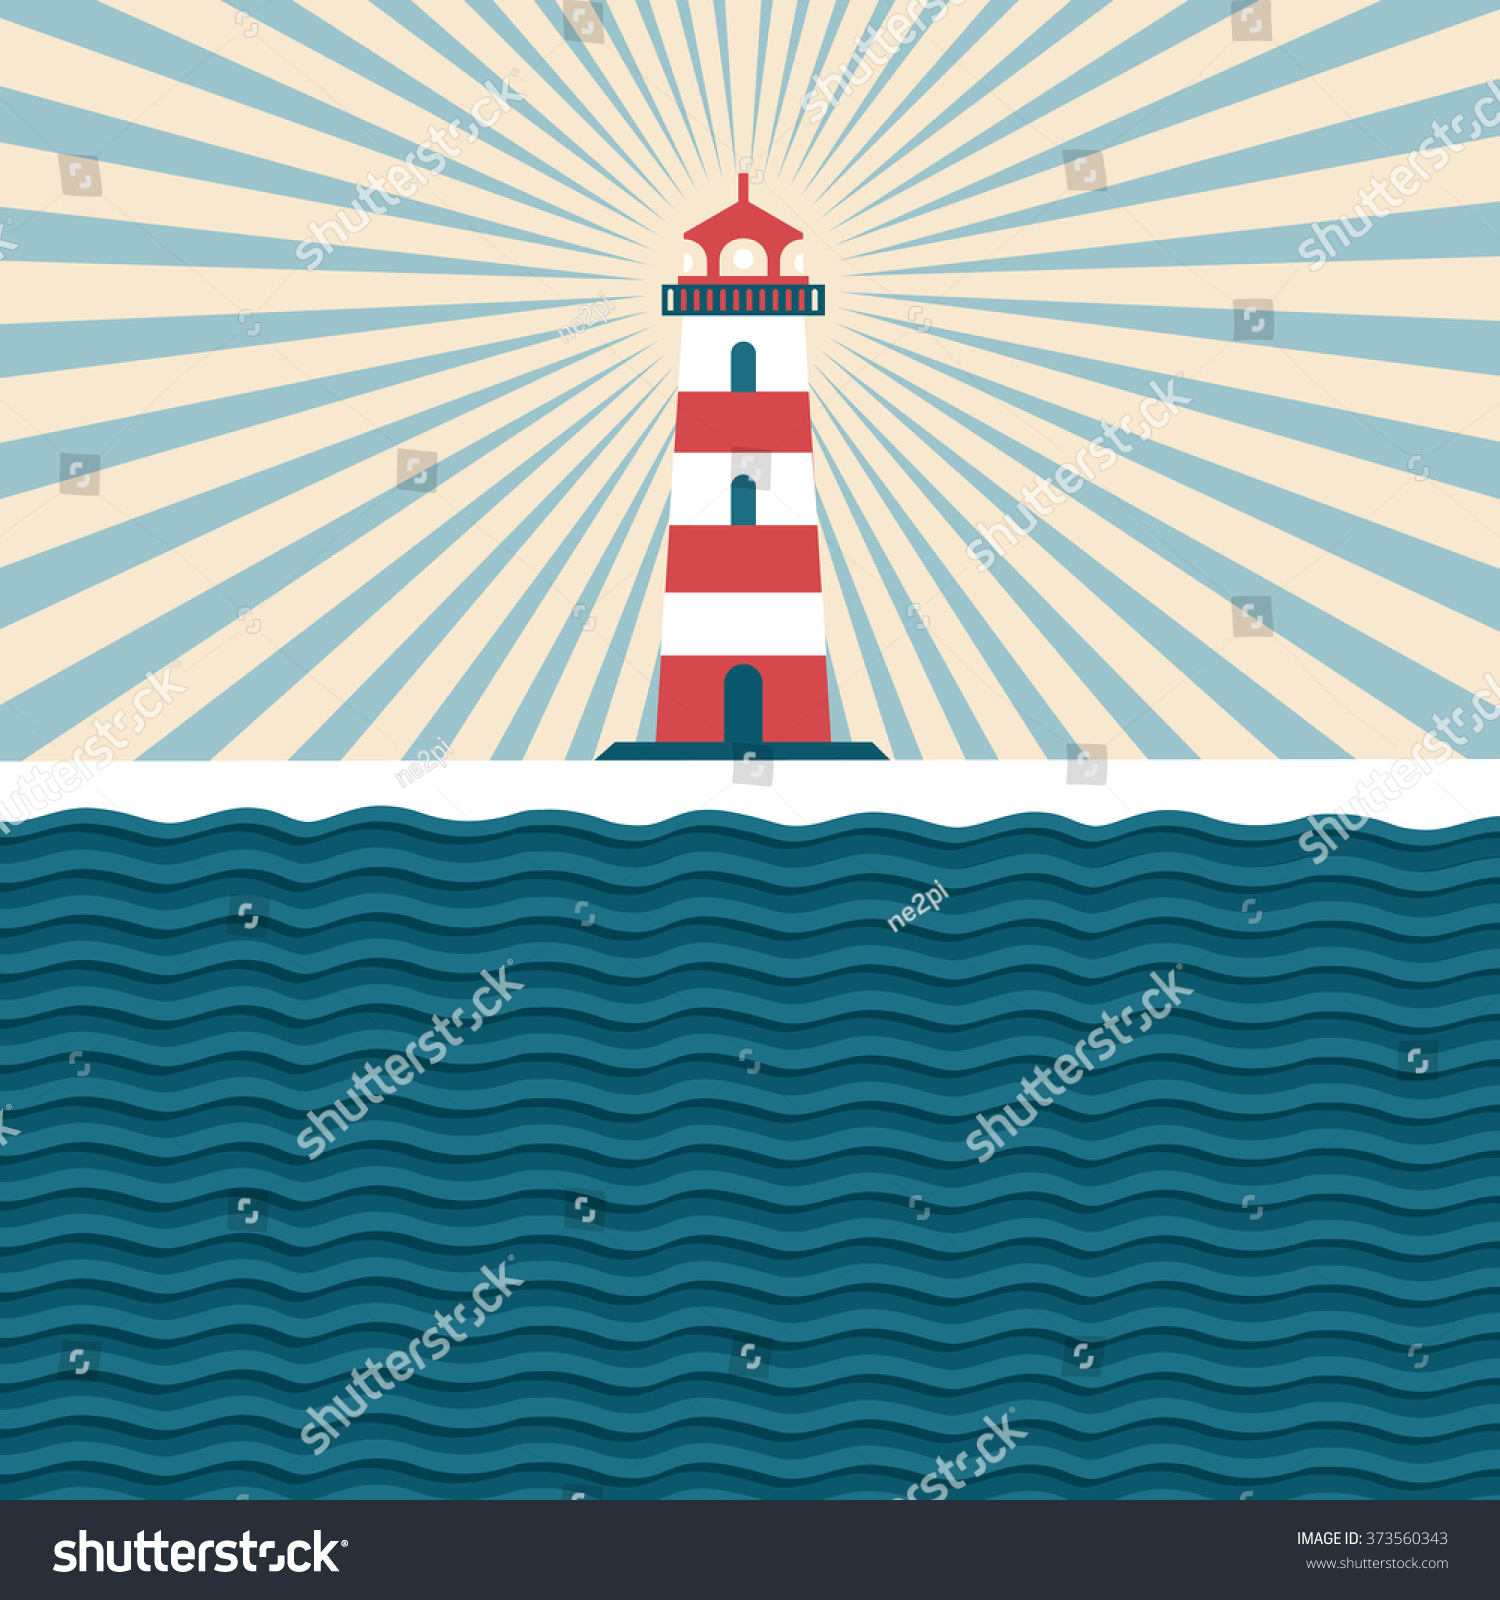 Lighthouse vintage illustration beacon flat style stock vector lighthouse vintage illustration with a beacon flat style design templates for greeting cards kristyandbryce Choice Image